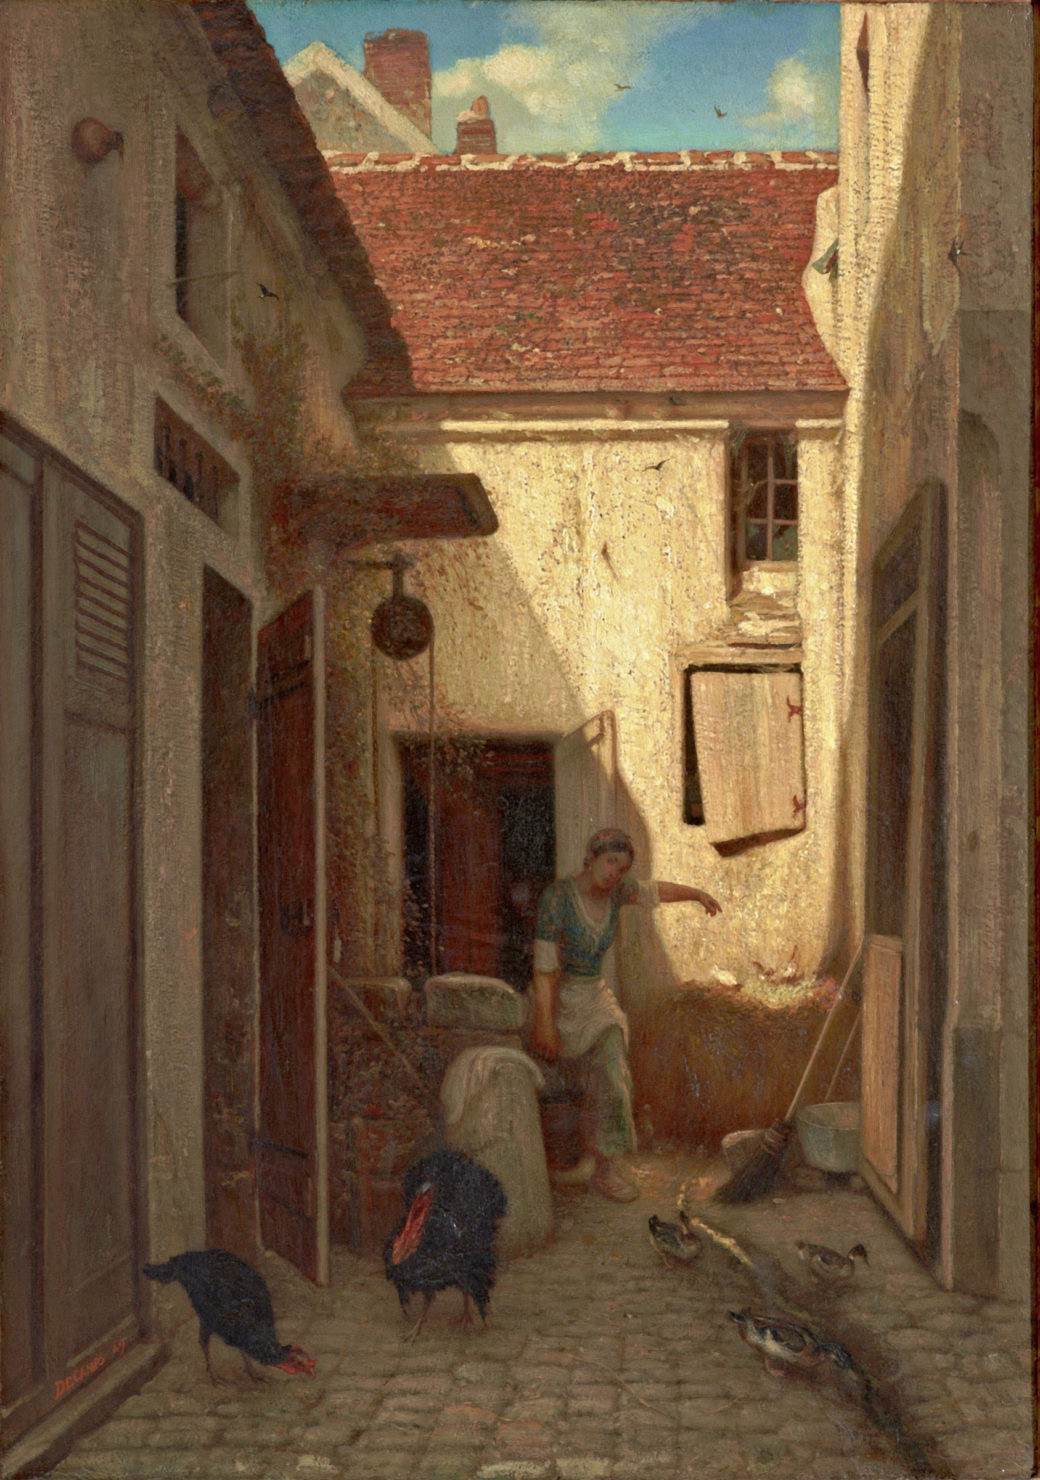 Painting of a European alleyway with pecking birds and a woman carrying a heavy bucket through an alley door.